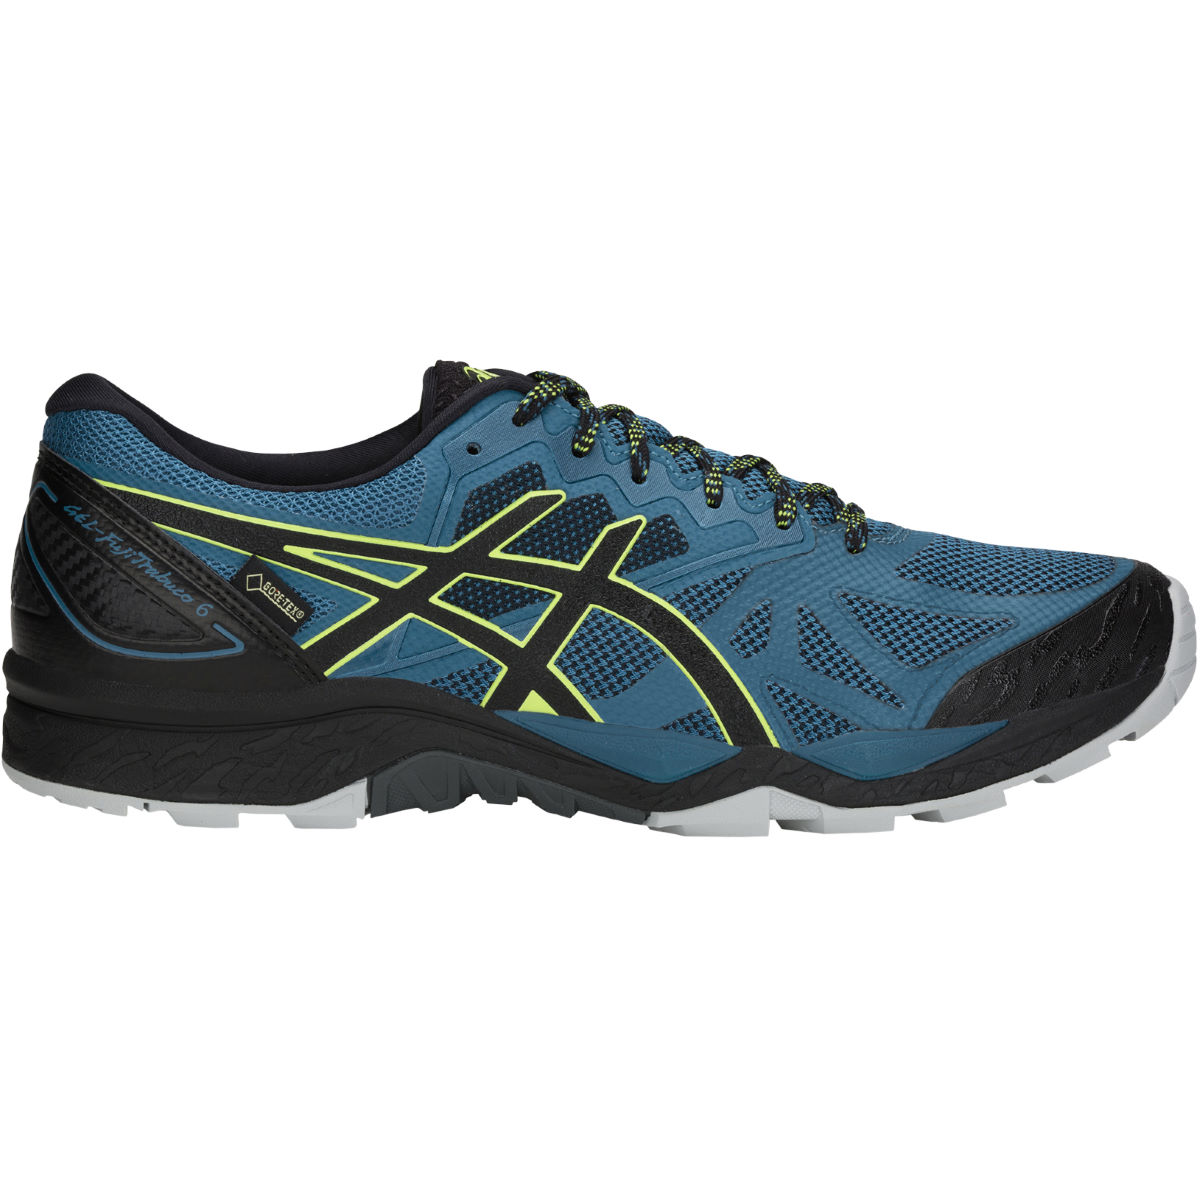 Chaussures Asics Gel-Fujitrabuco 6 GTX - UK 7.5 Deep Aqua/Black